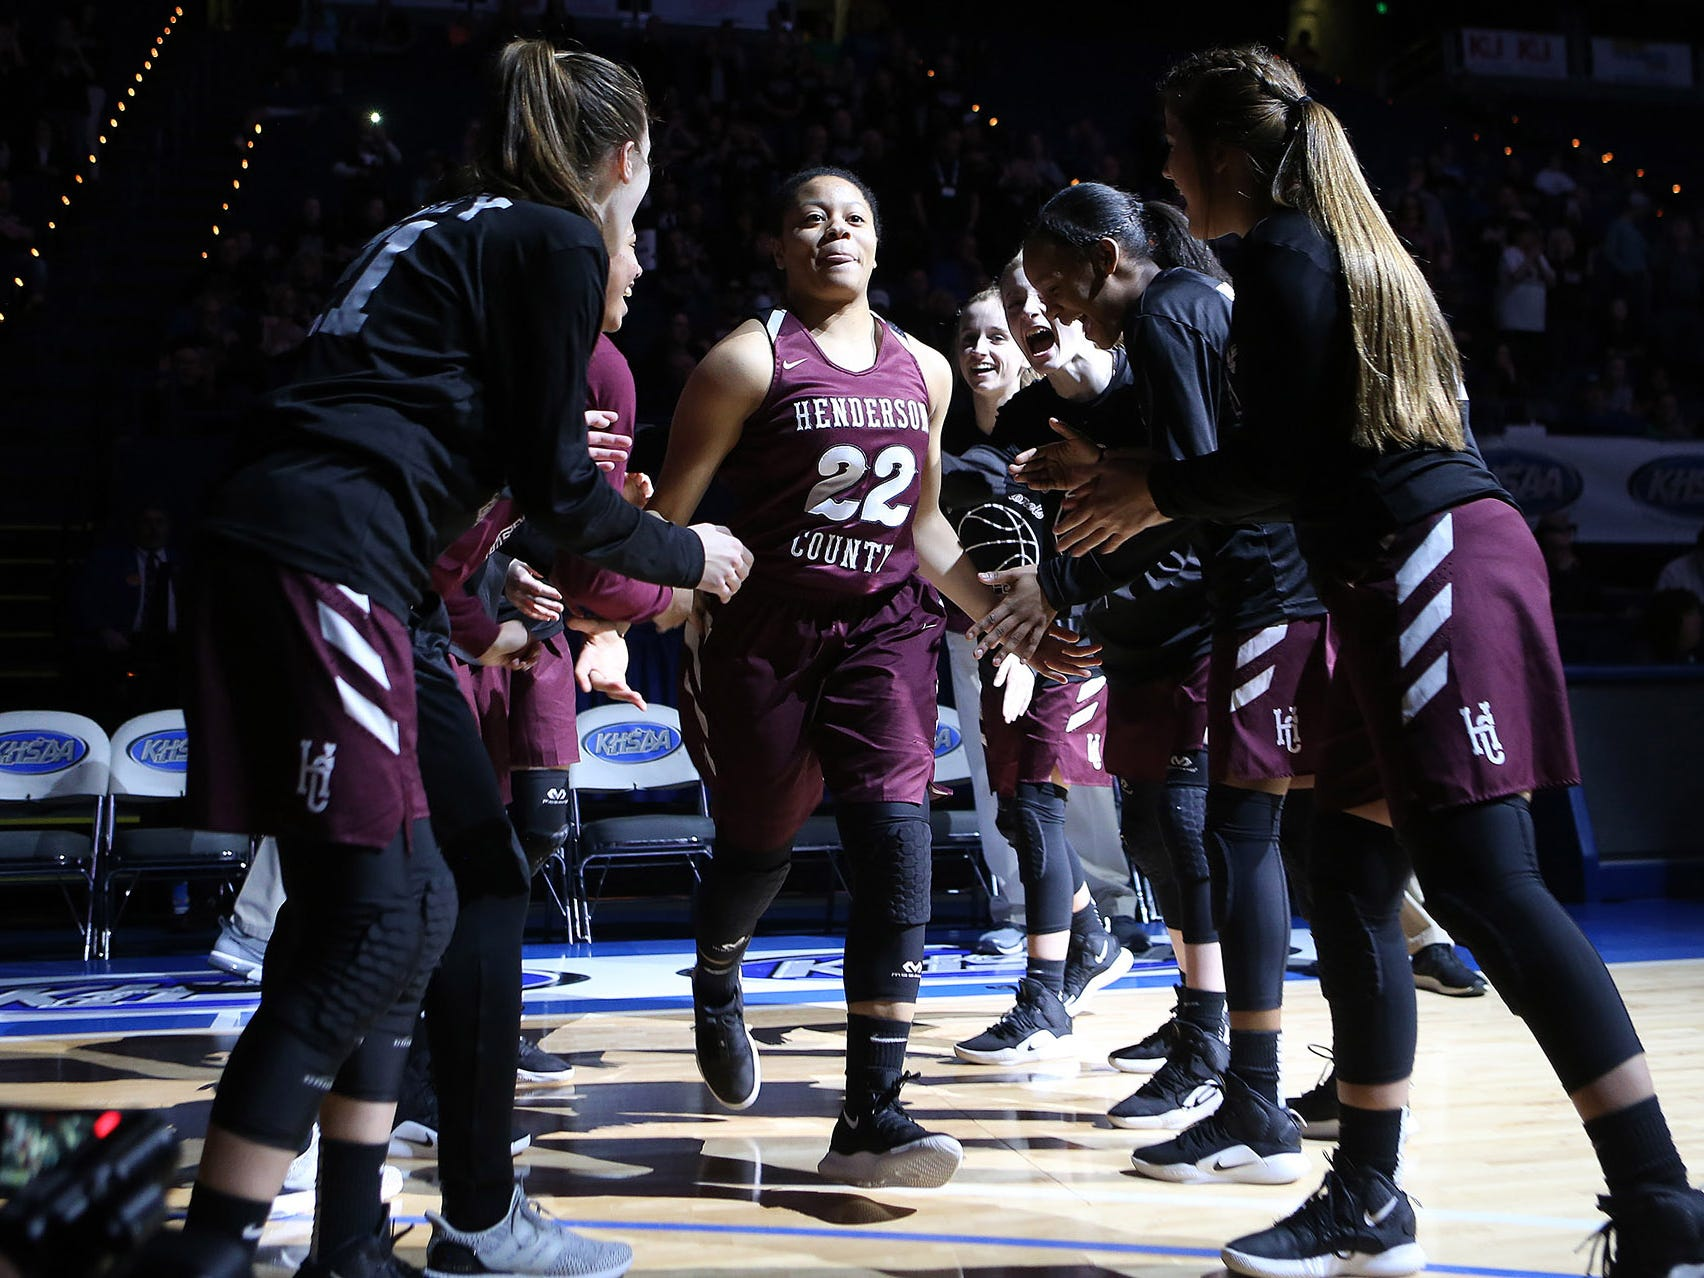 Henderson County's Lauren Hubbard slapped hands with teammates during introduction of starting lineups Friday against North Laurel in Game 8 of the KHSAA Girls' Sweet 16 at Rupp Arena in Lexington.